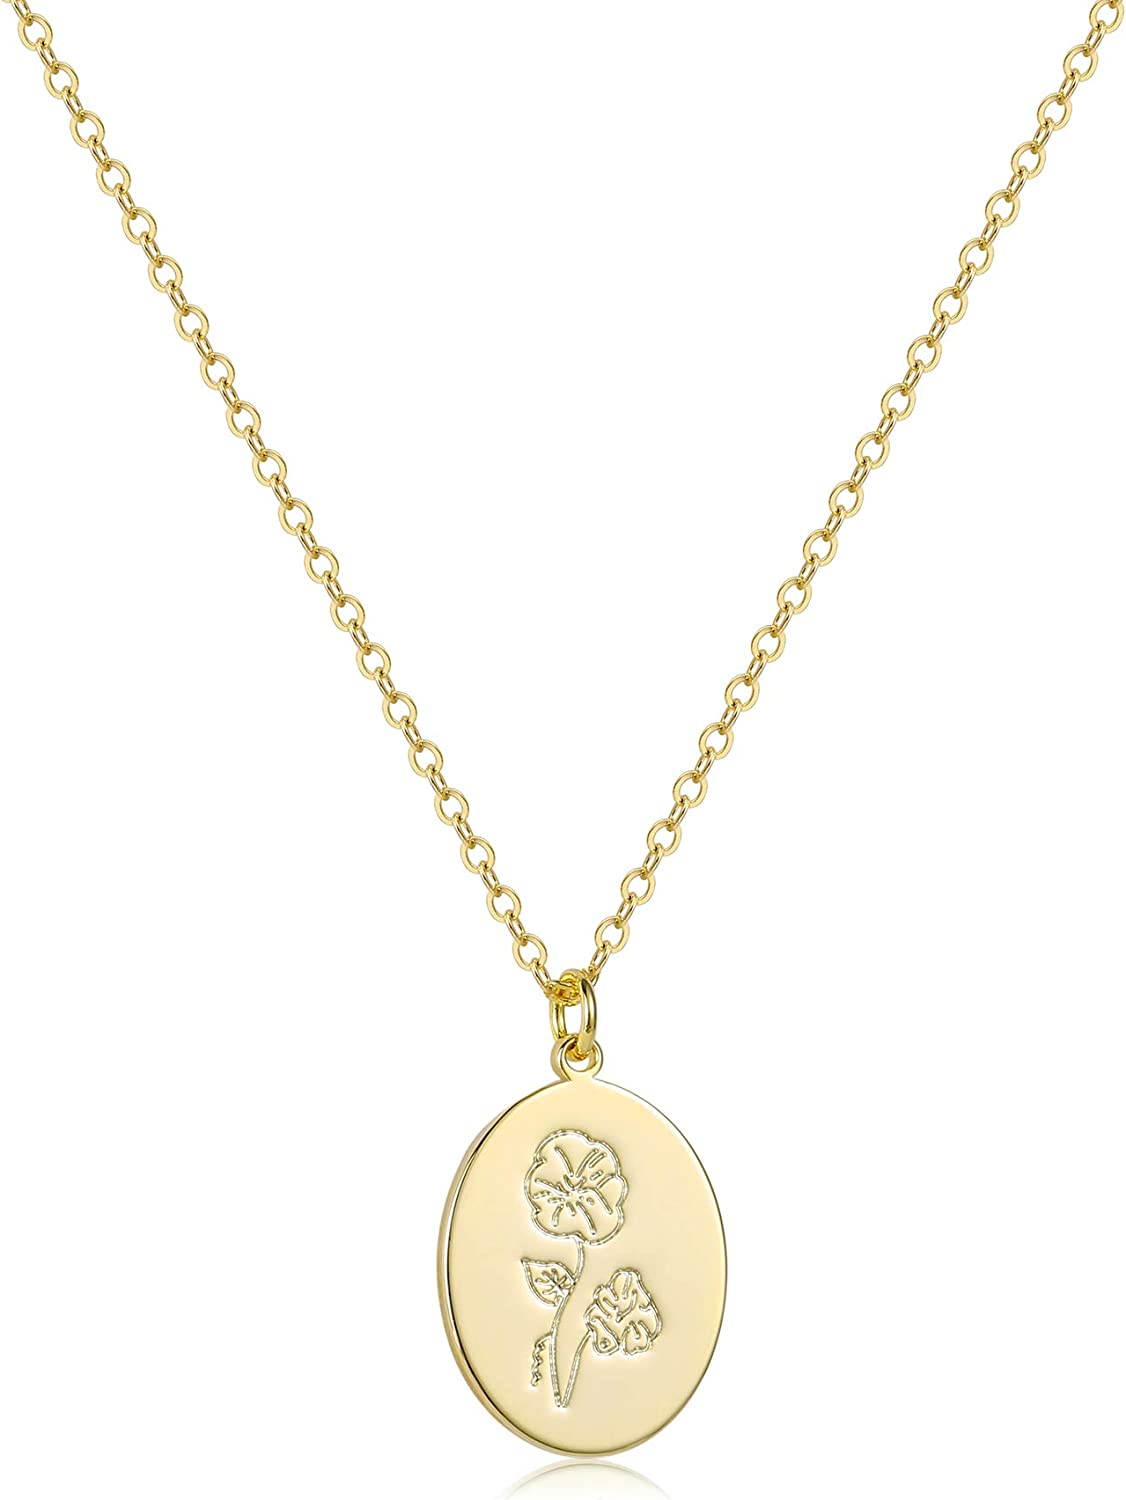 S.J JEWELRY 14K Gold Tulsa Mall Plated Limited price sale Guardian Disc Necklace Flower Coin P